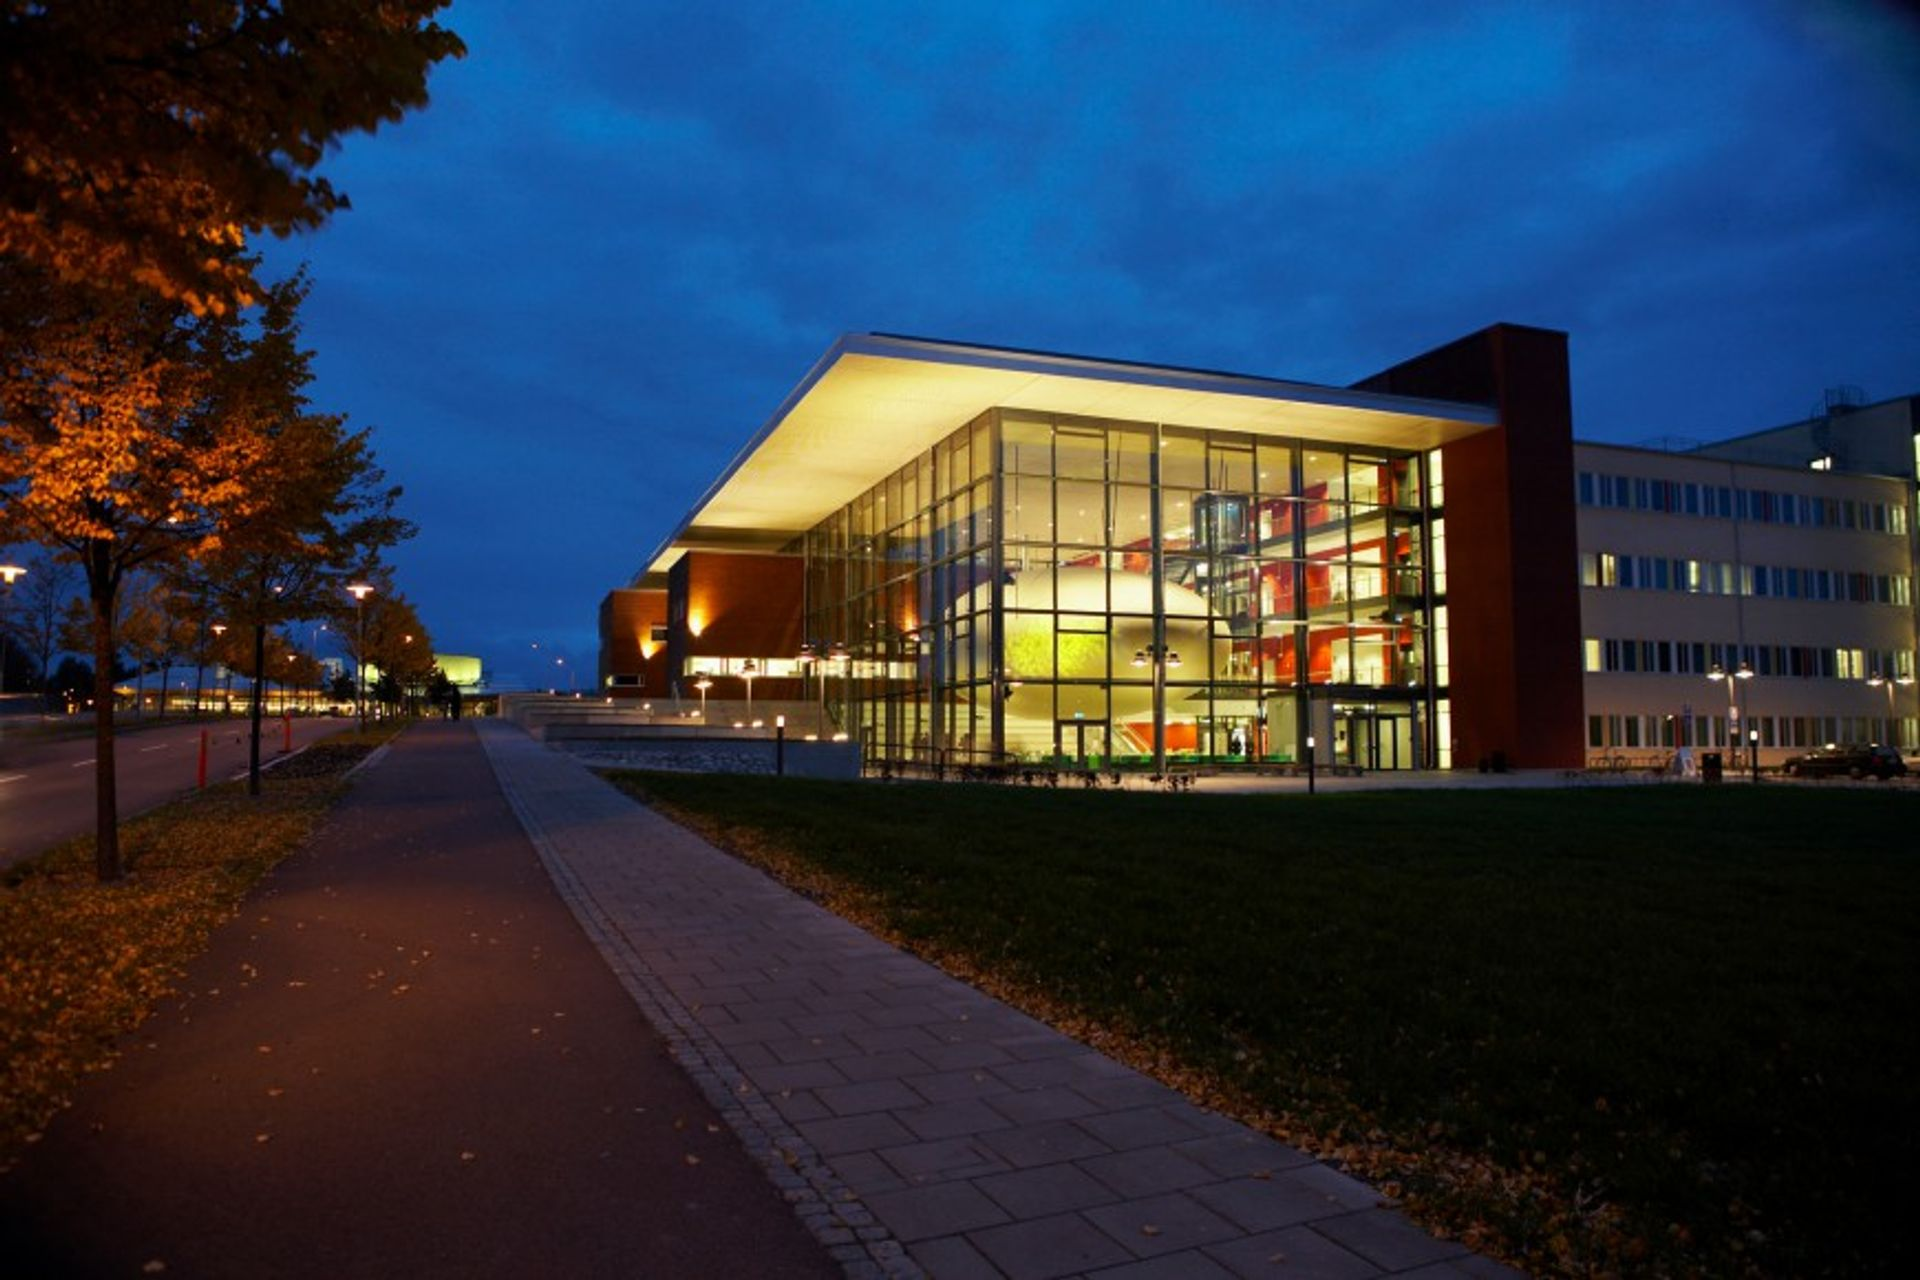 Karlstad university building